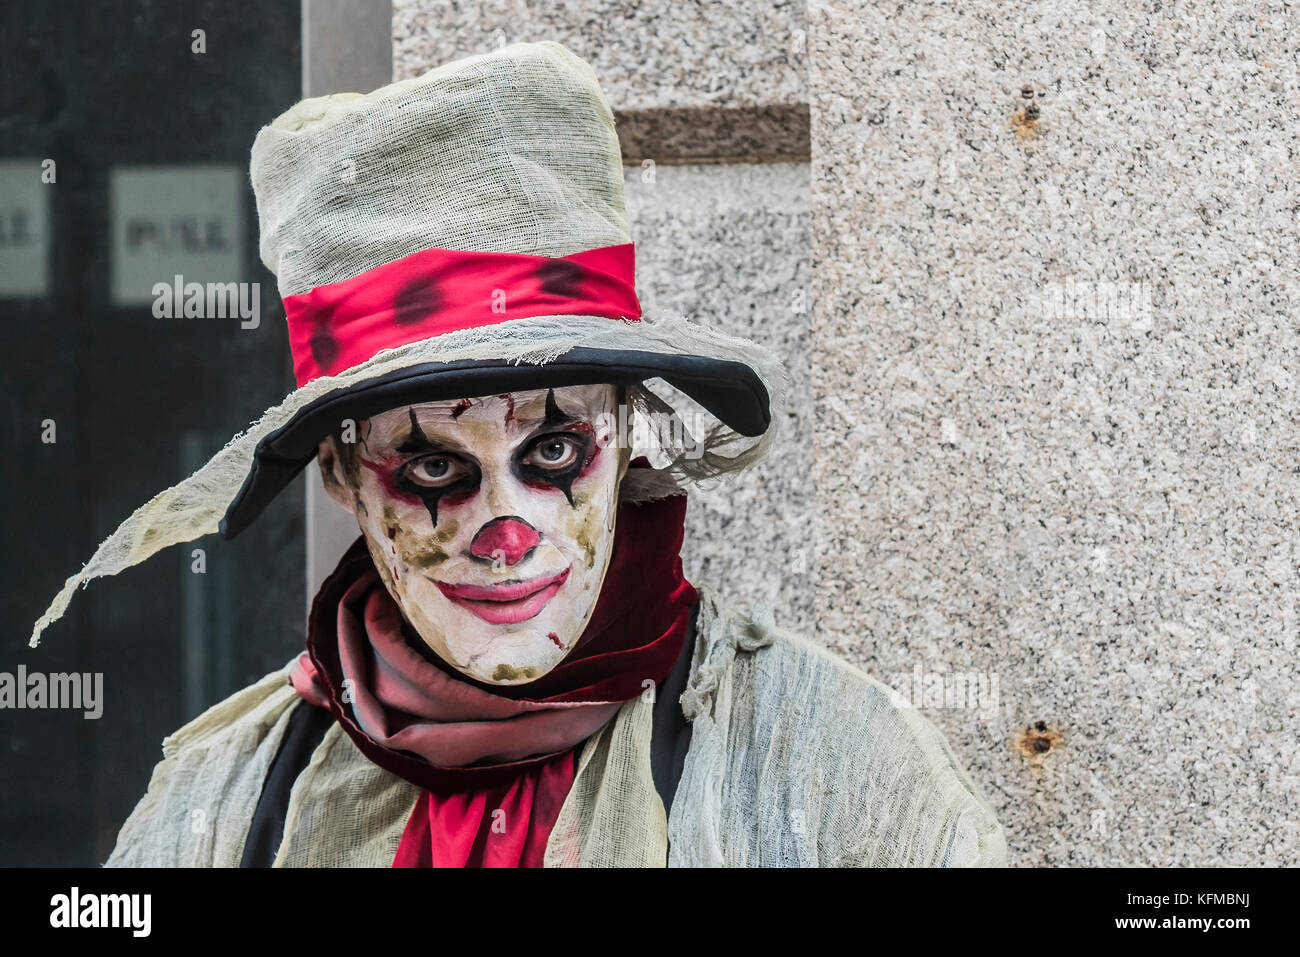 Zombie Crawl - a clown zombie in the annual Zombie Crawl in Newquay, Cornwall. - Stock Image